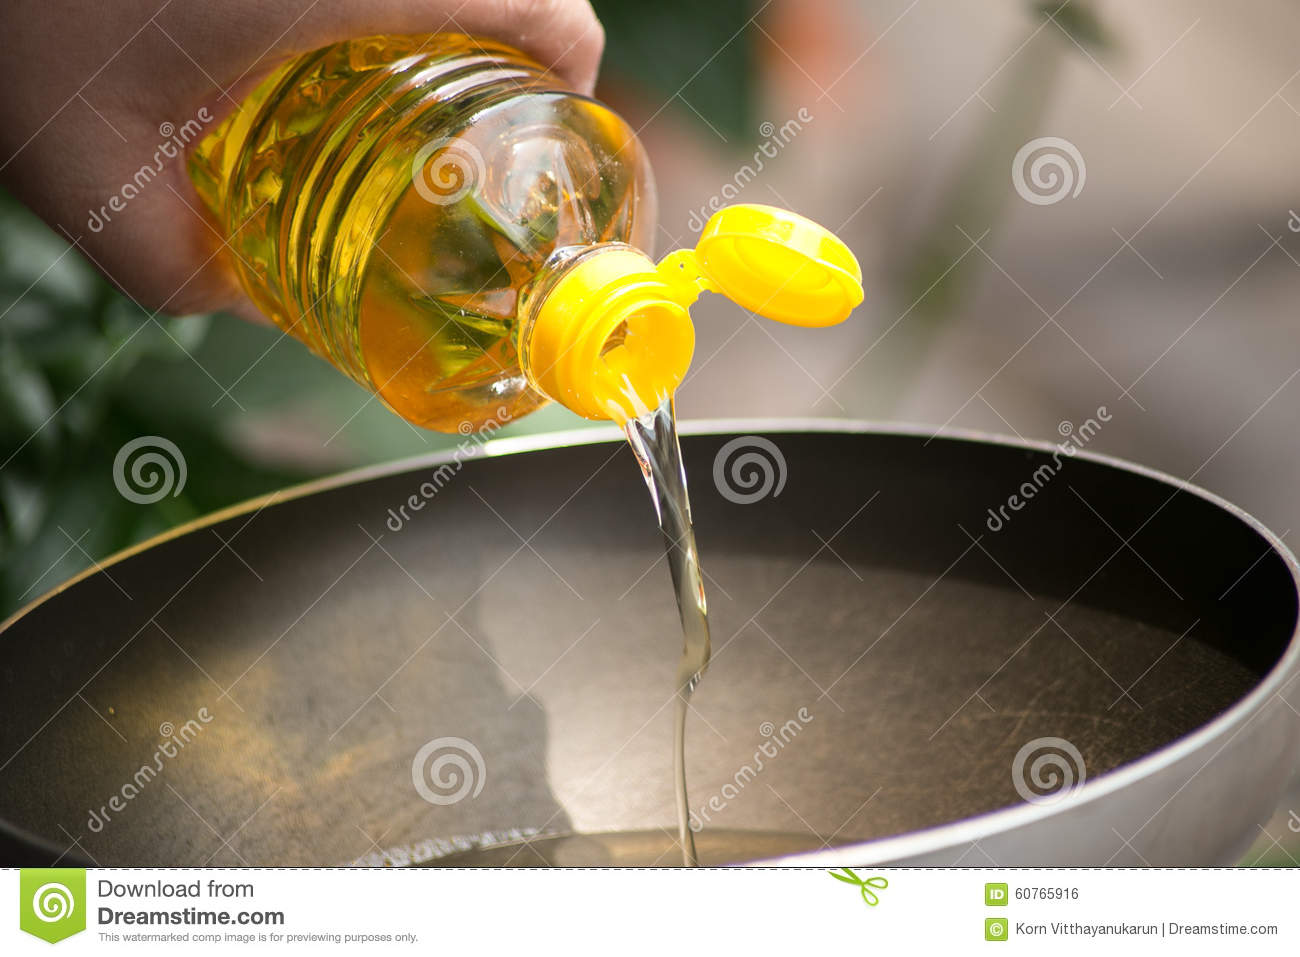 Vegetable Oil for food.